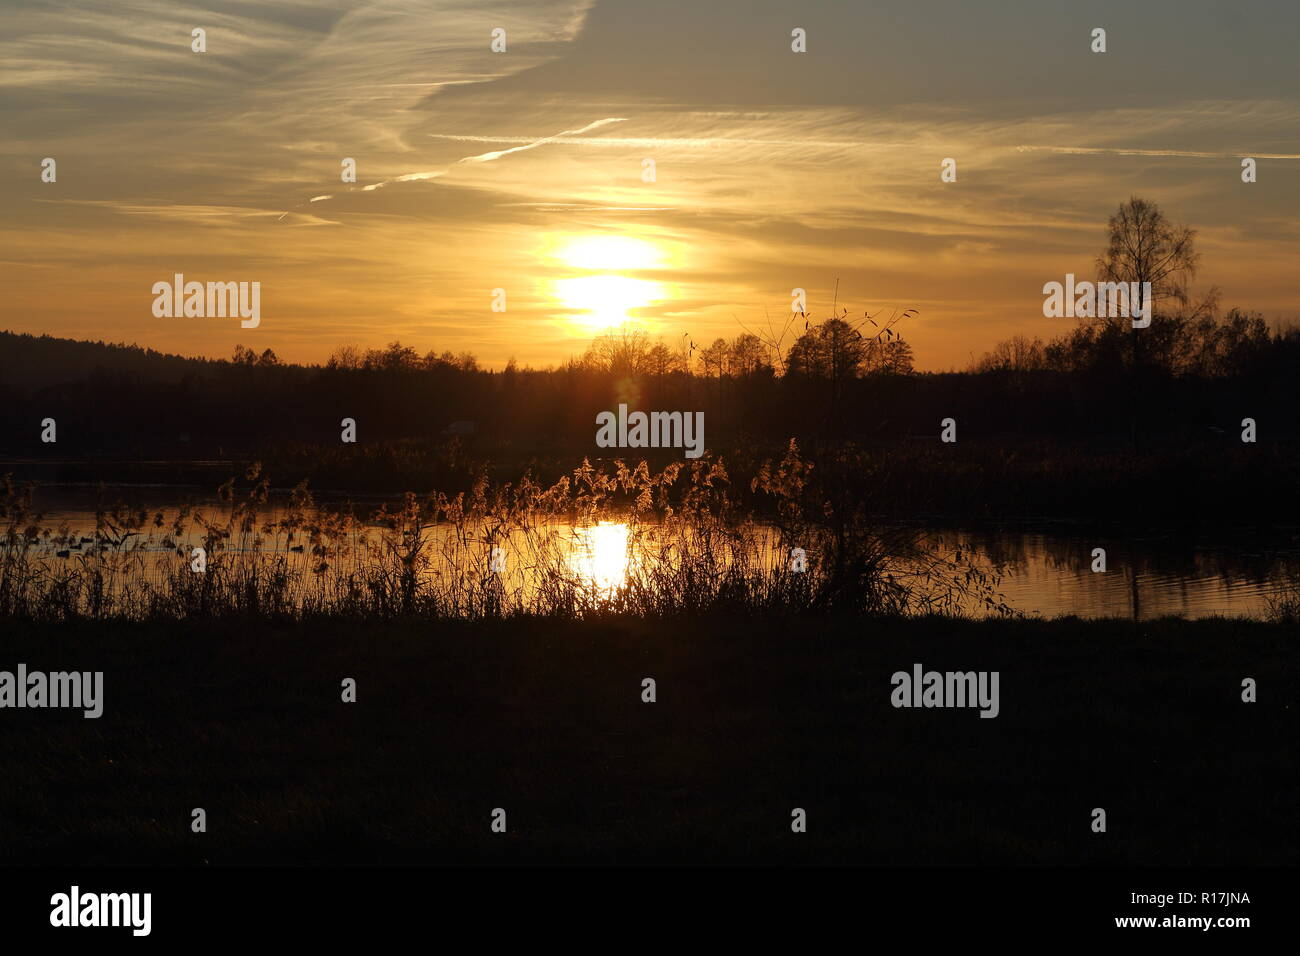 Dramatic sunset over the lake. Silhouettes of rushes, reeds, grass, water plants and forest in late autumn - Stock Image